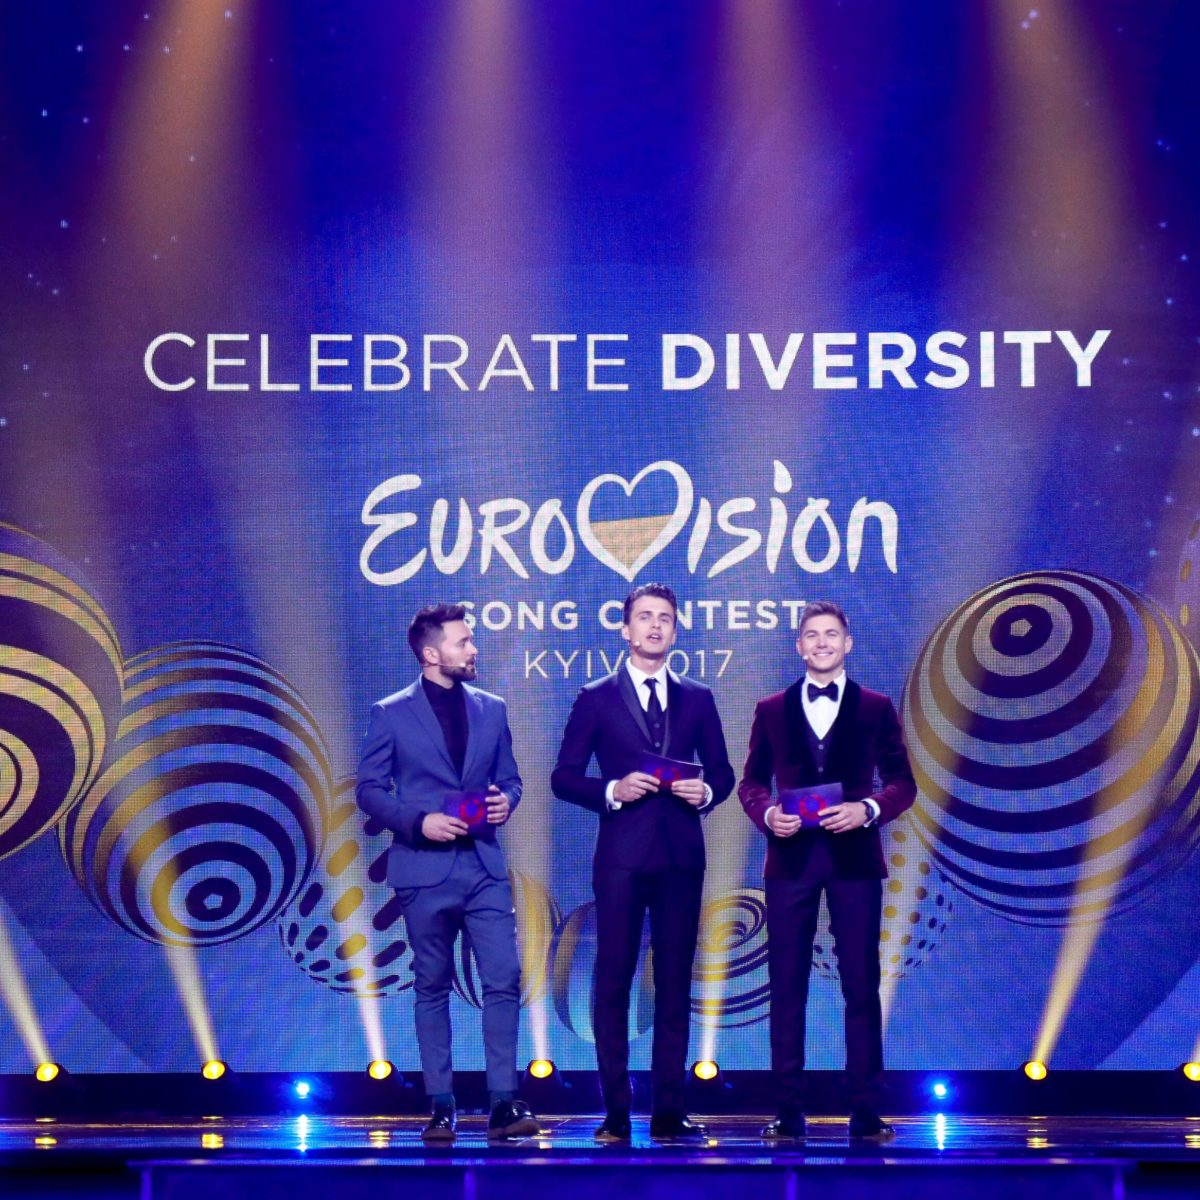 Photo: Andres Putting. The hosts of the 2017 Eurovision Song Contest; Timur Miroshnychenko, Oleksandr Skichko and Volodymyr Ostapchuk.